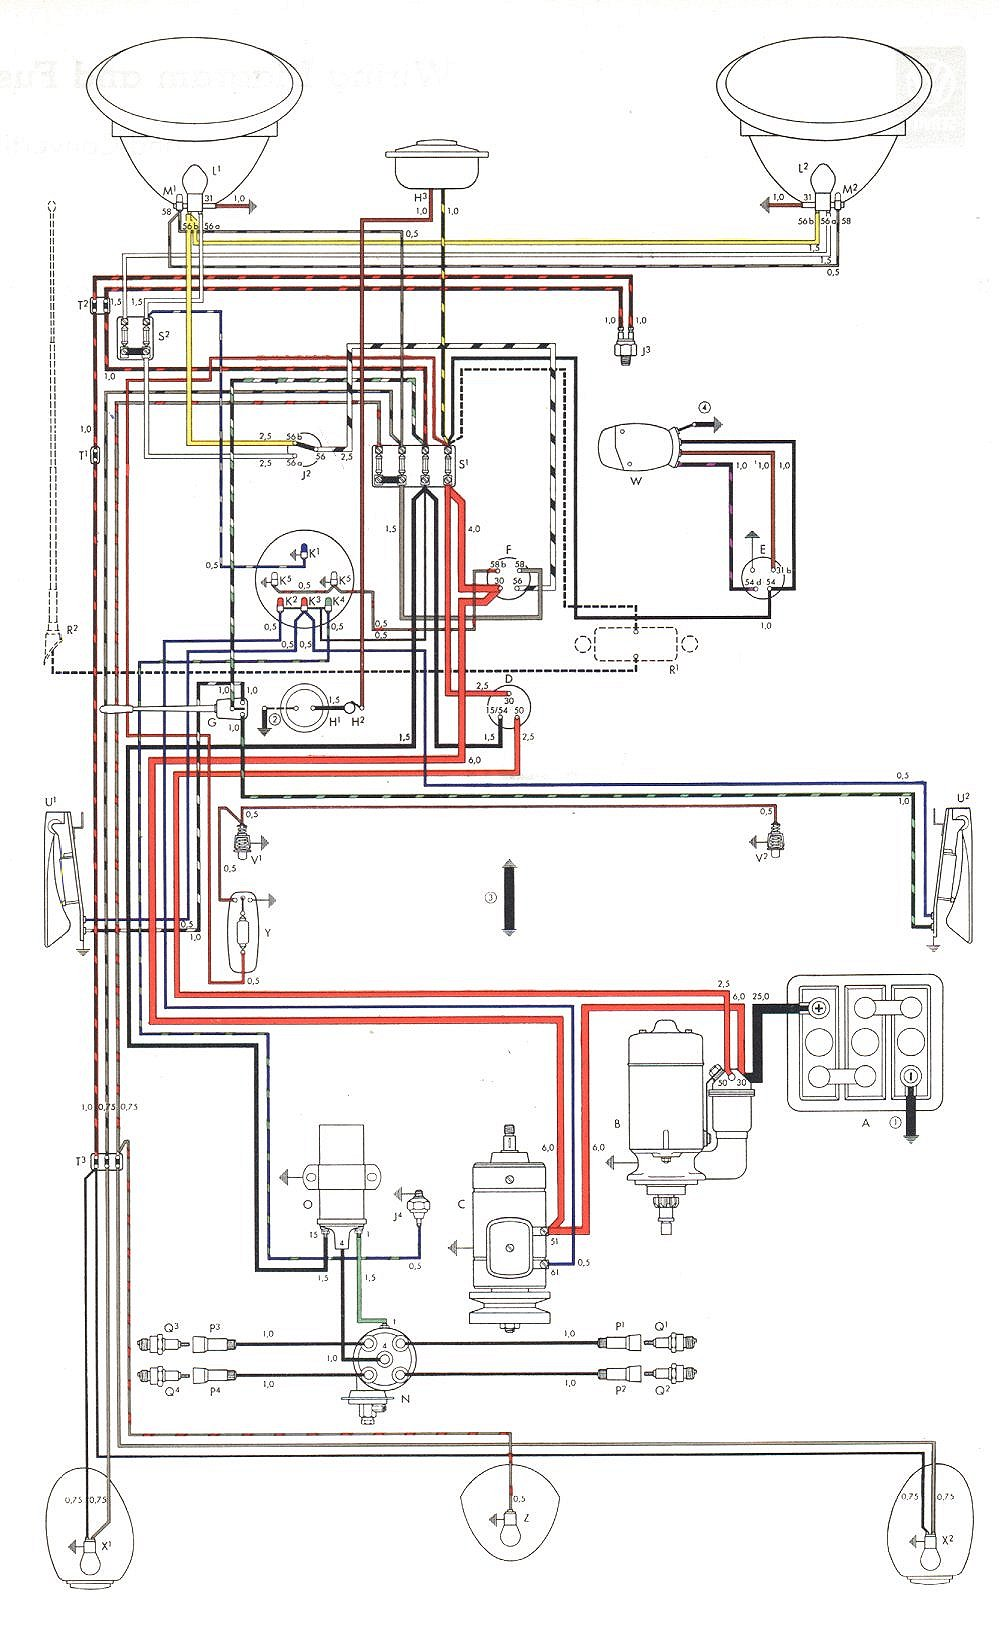 1966 beetle wiring diagram carbonvote mudit blog \u20221968 vw bug wiring wiring diagram rh 13 kreditmedia de 1966 vw beetle wiper motor wiring diagram